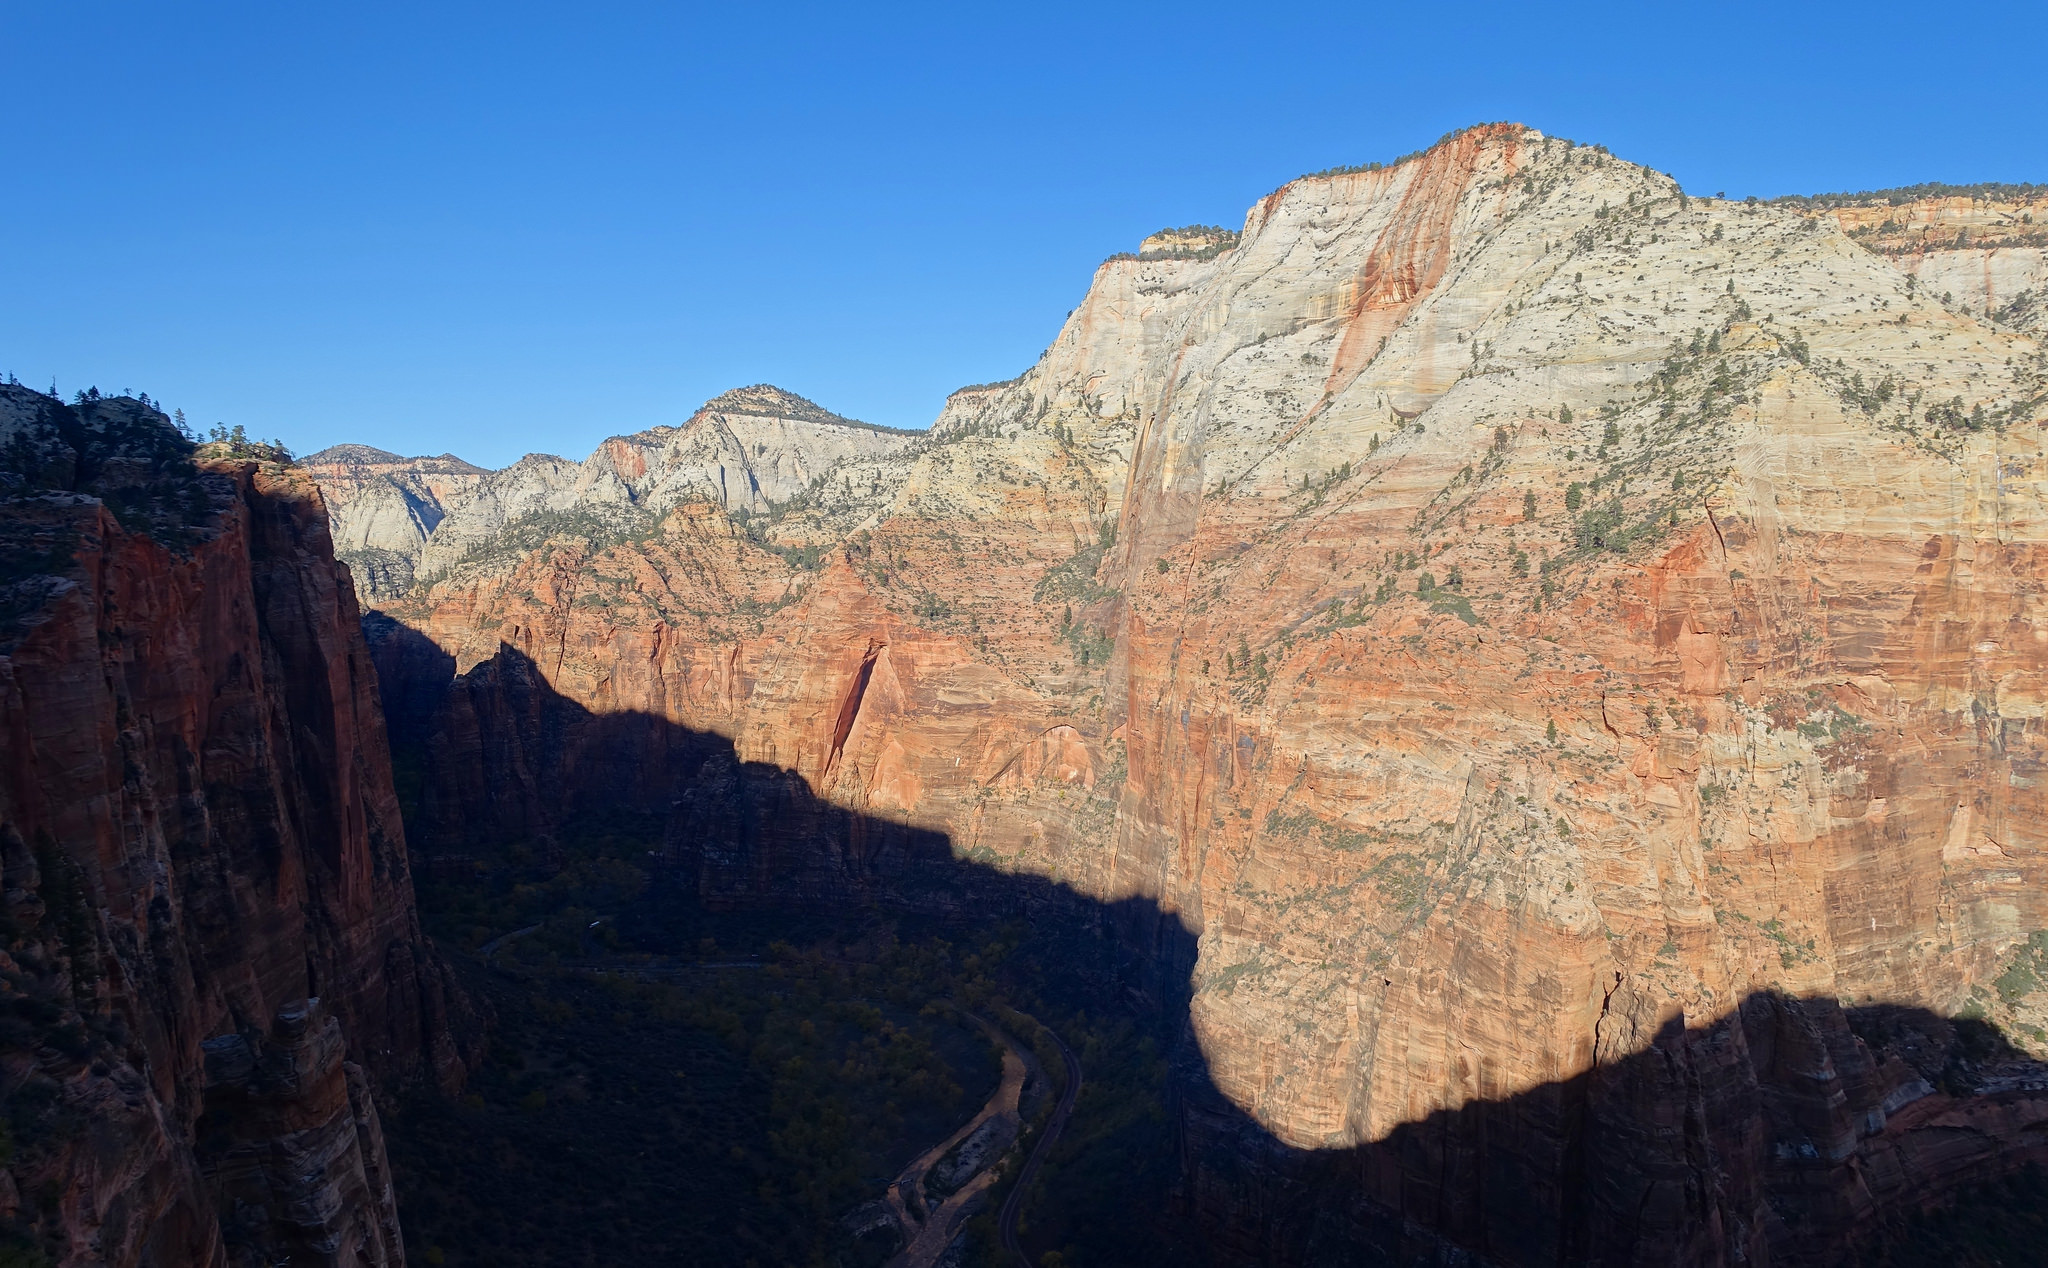 Looking North from Angels Landing with the Virgin River below